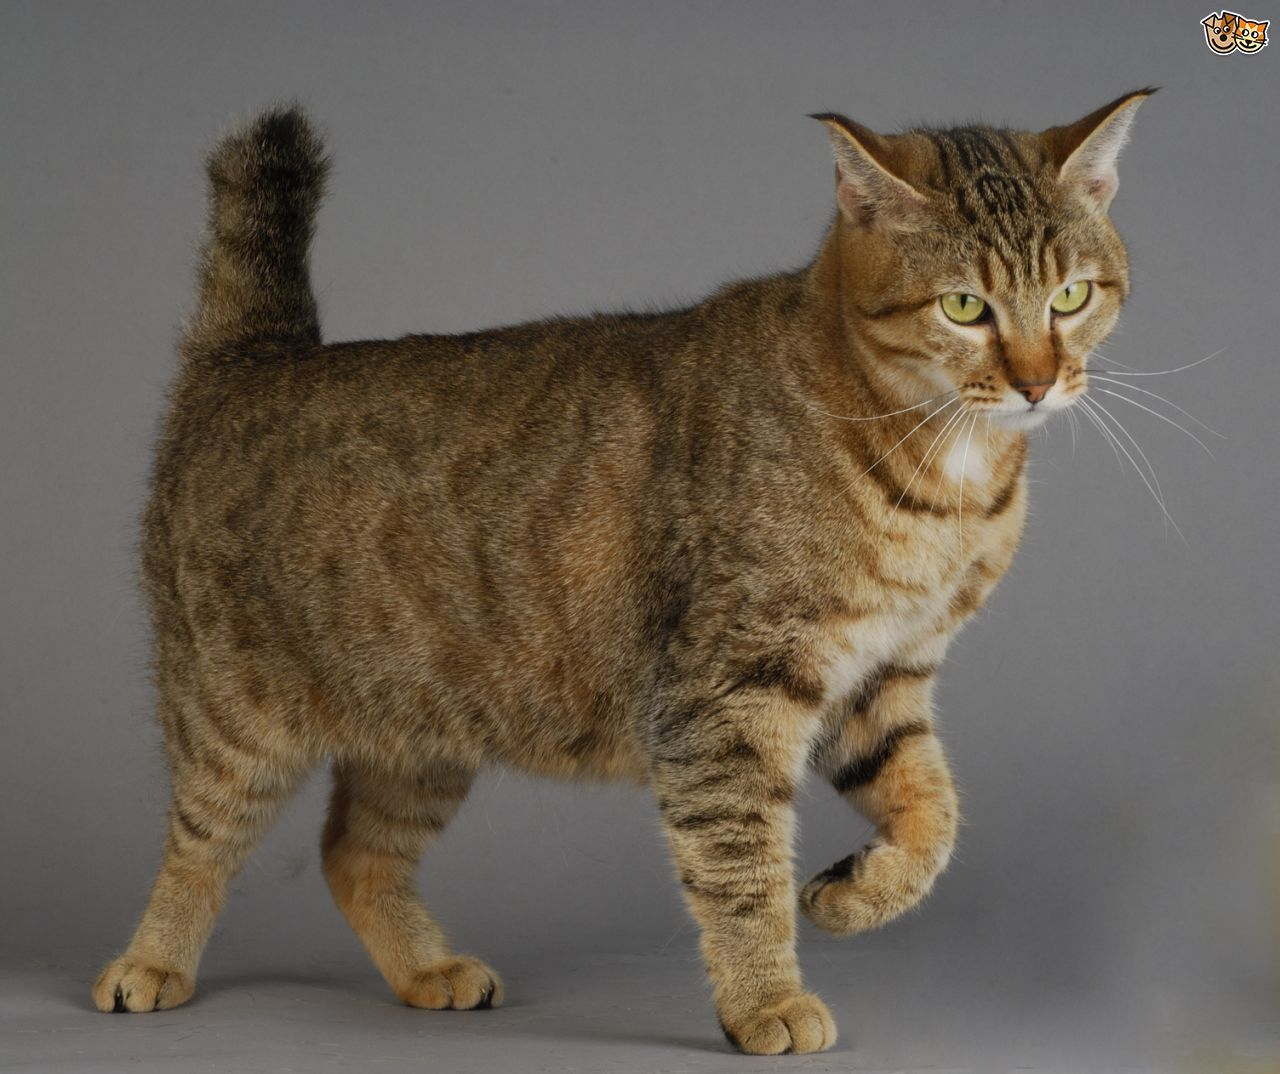 large domestic cat breeds Large Domestic Cat Breeds With